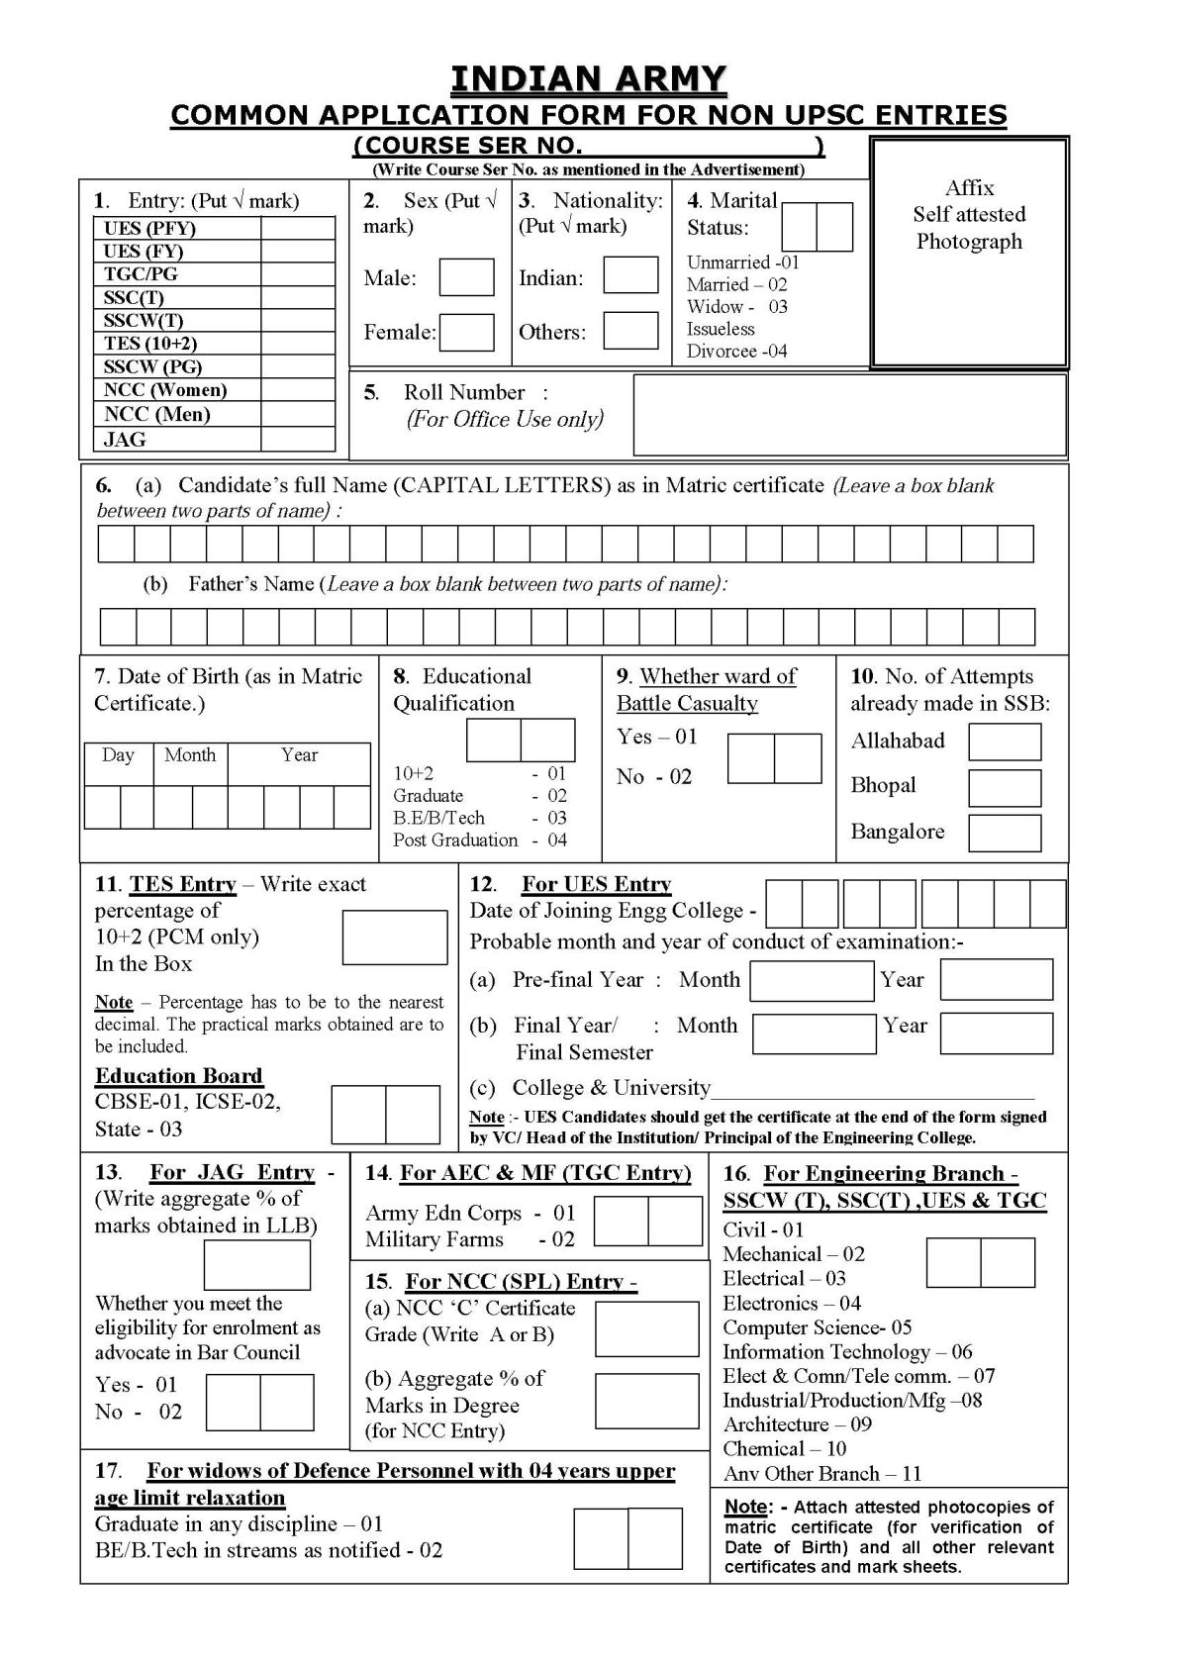 Indian Army Non UPSC Courses and Application Form 2017 2018 – Army Form